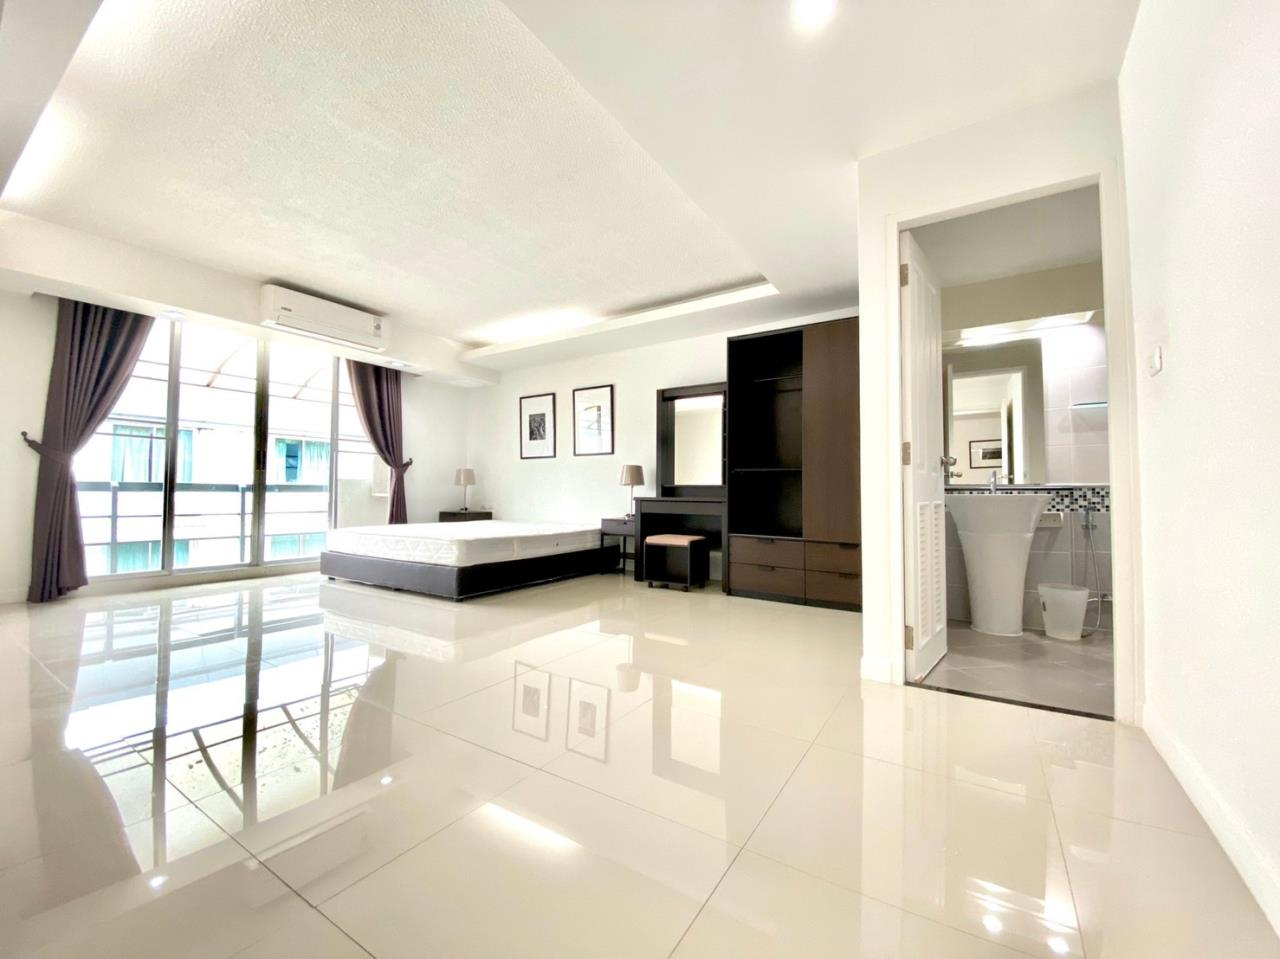 Bestbkkcondos Agency's Waterford 50 2 bedrooms 2 bathrooms 96.8 sqm. 8th Floor for sale 6.582mTHB Rental 28000THB 8